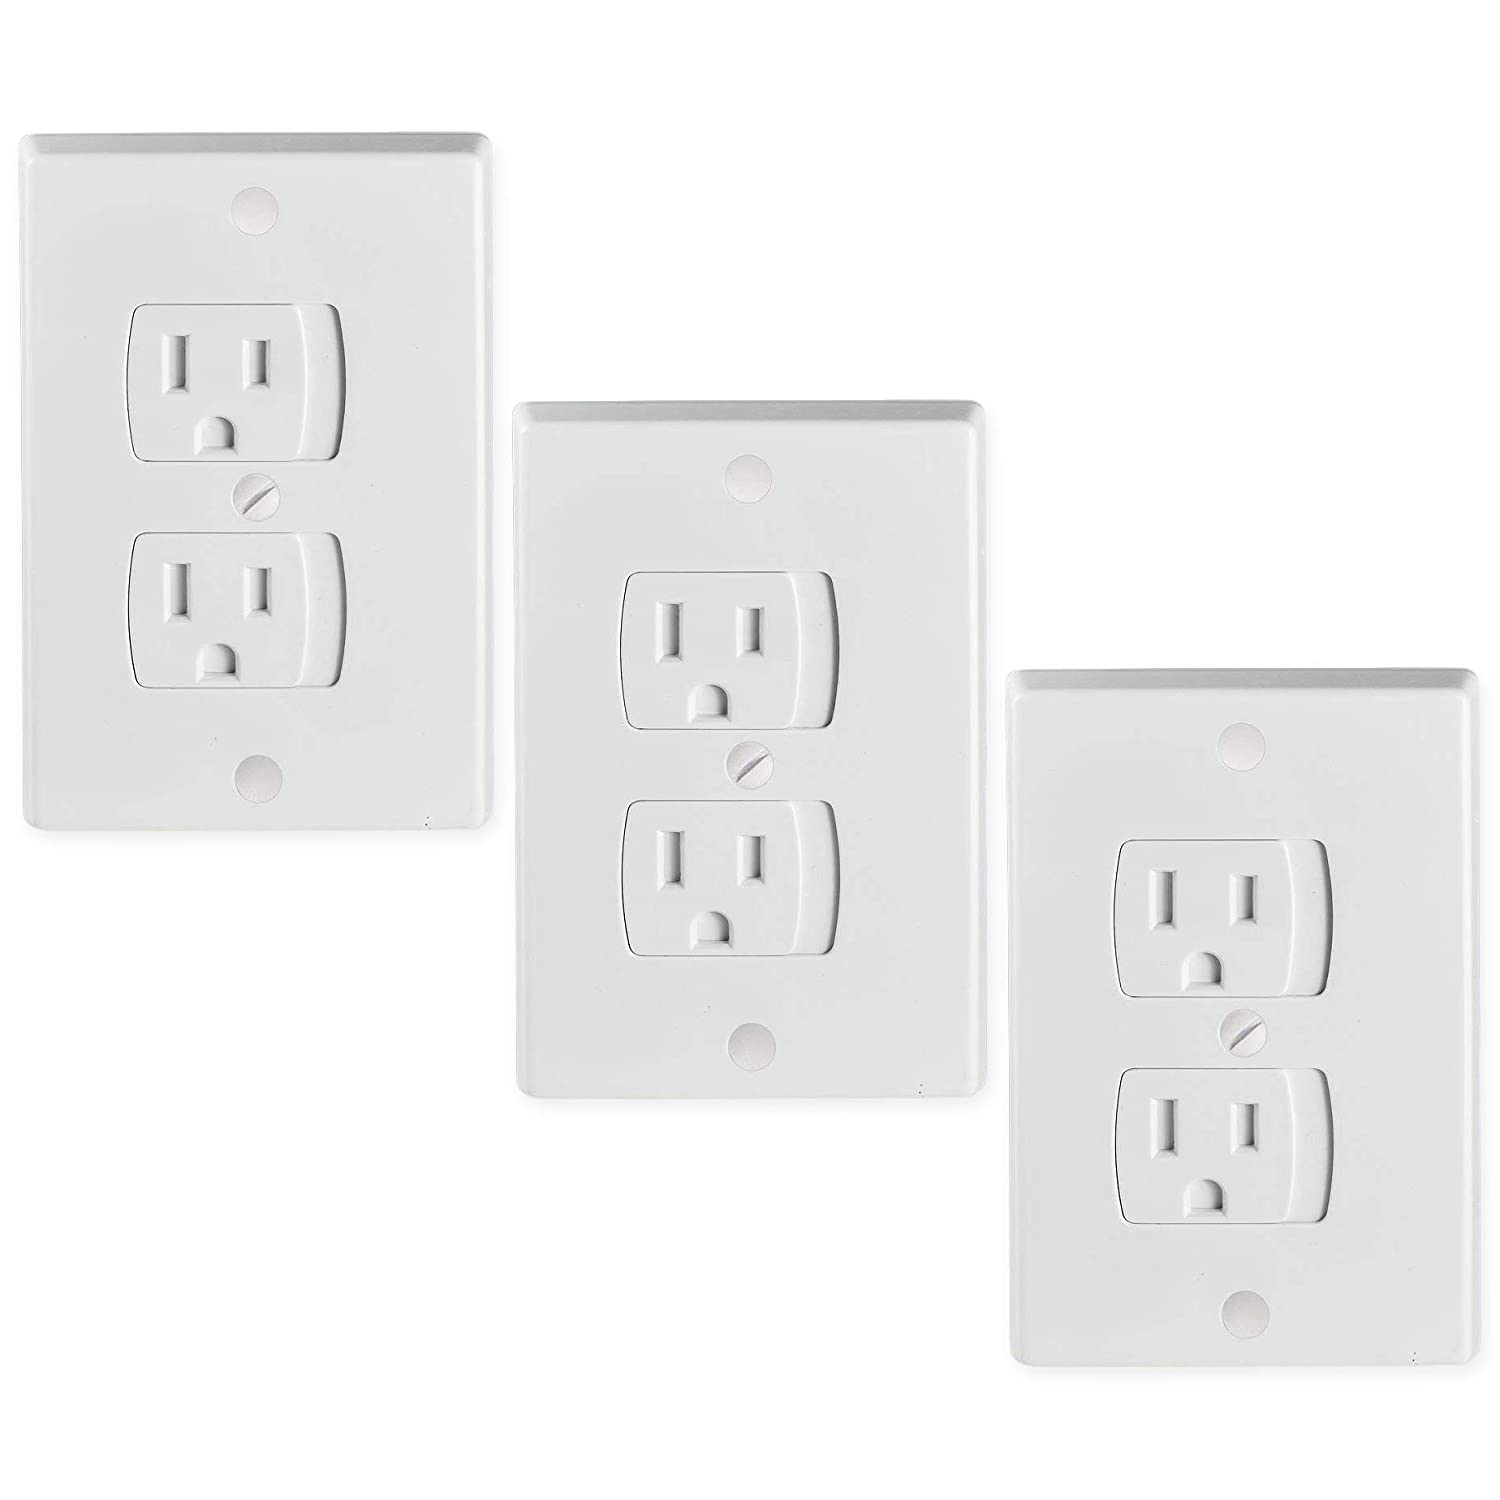 Tiger Chef Universal White 6-Pack Self-Closing Electrical Light Switch Outlet Covers Plate, Baby Proofing Child Safet6 outler cover baby safety